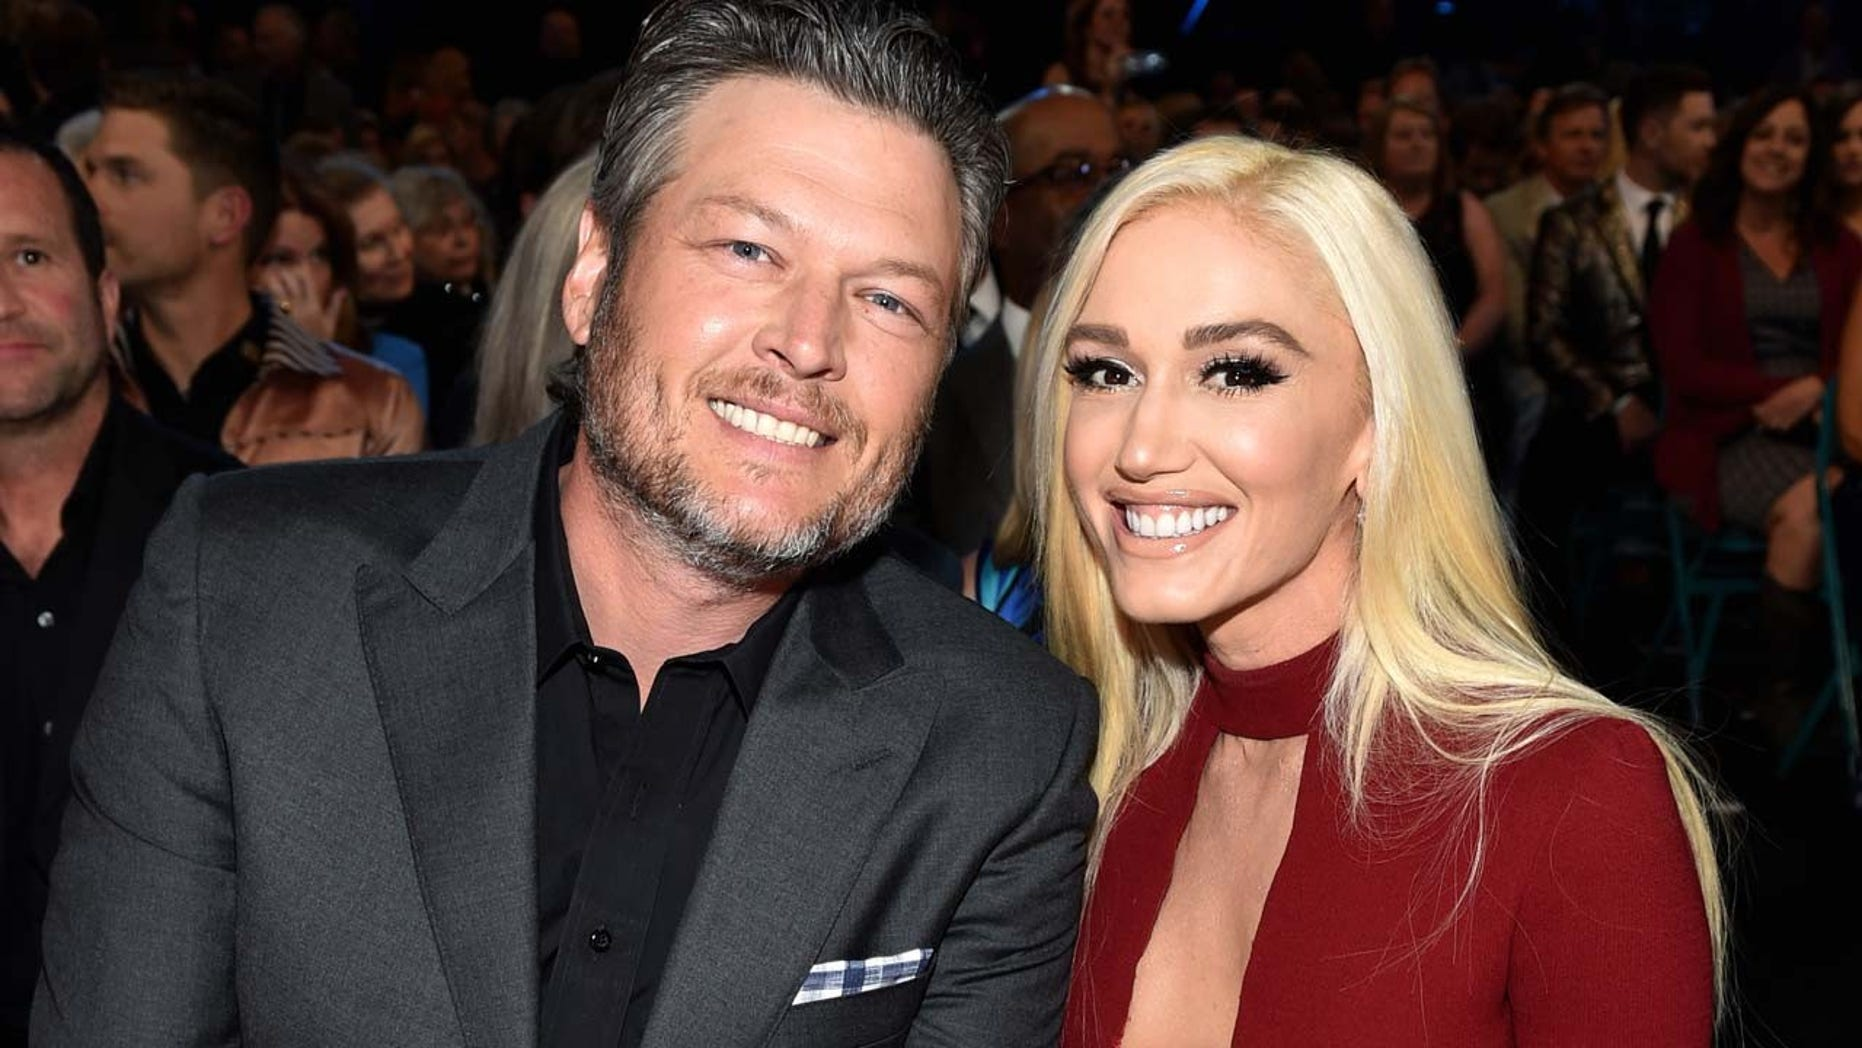 Blake Shelton brings girlfriend Gwen Stefani to the 2018 ACM Awards.